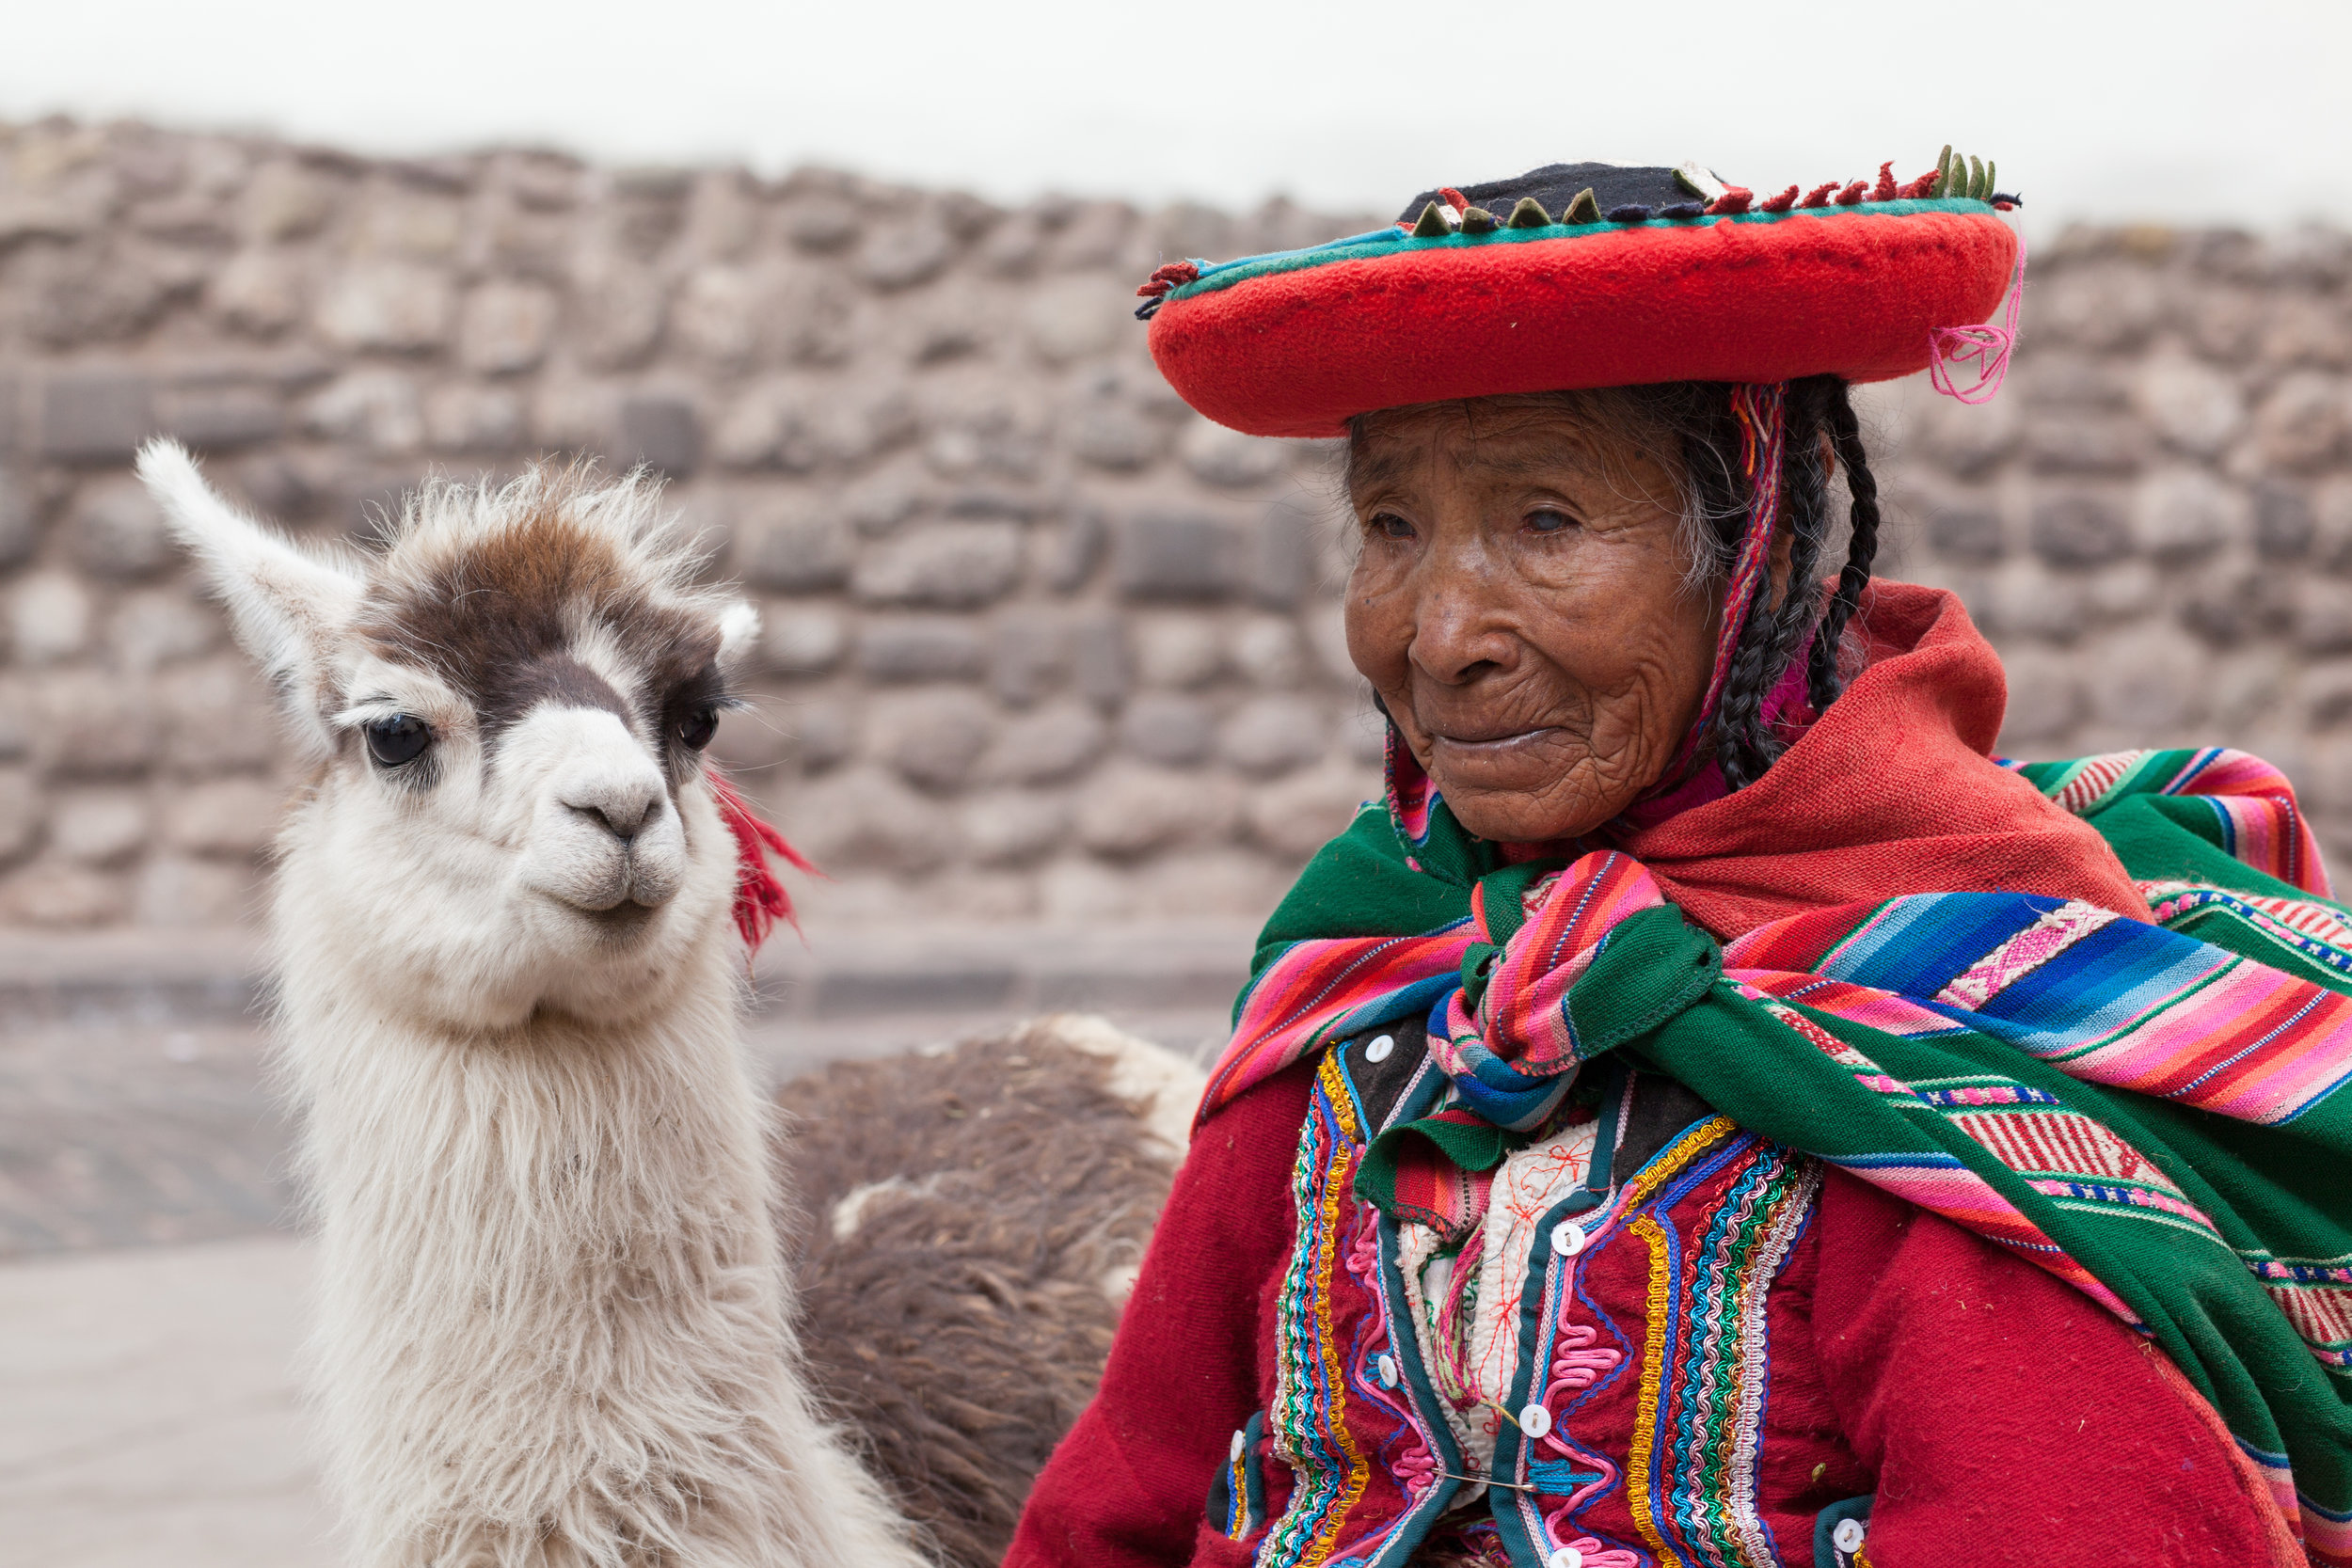 Peruvian Portrait by Geraint Rowland, Cusco.